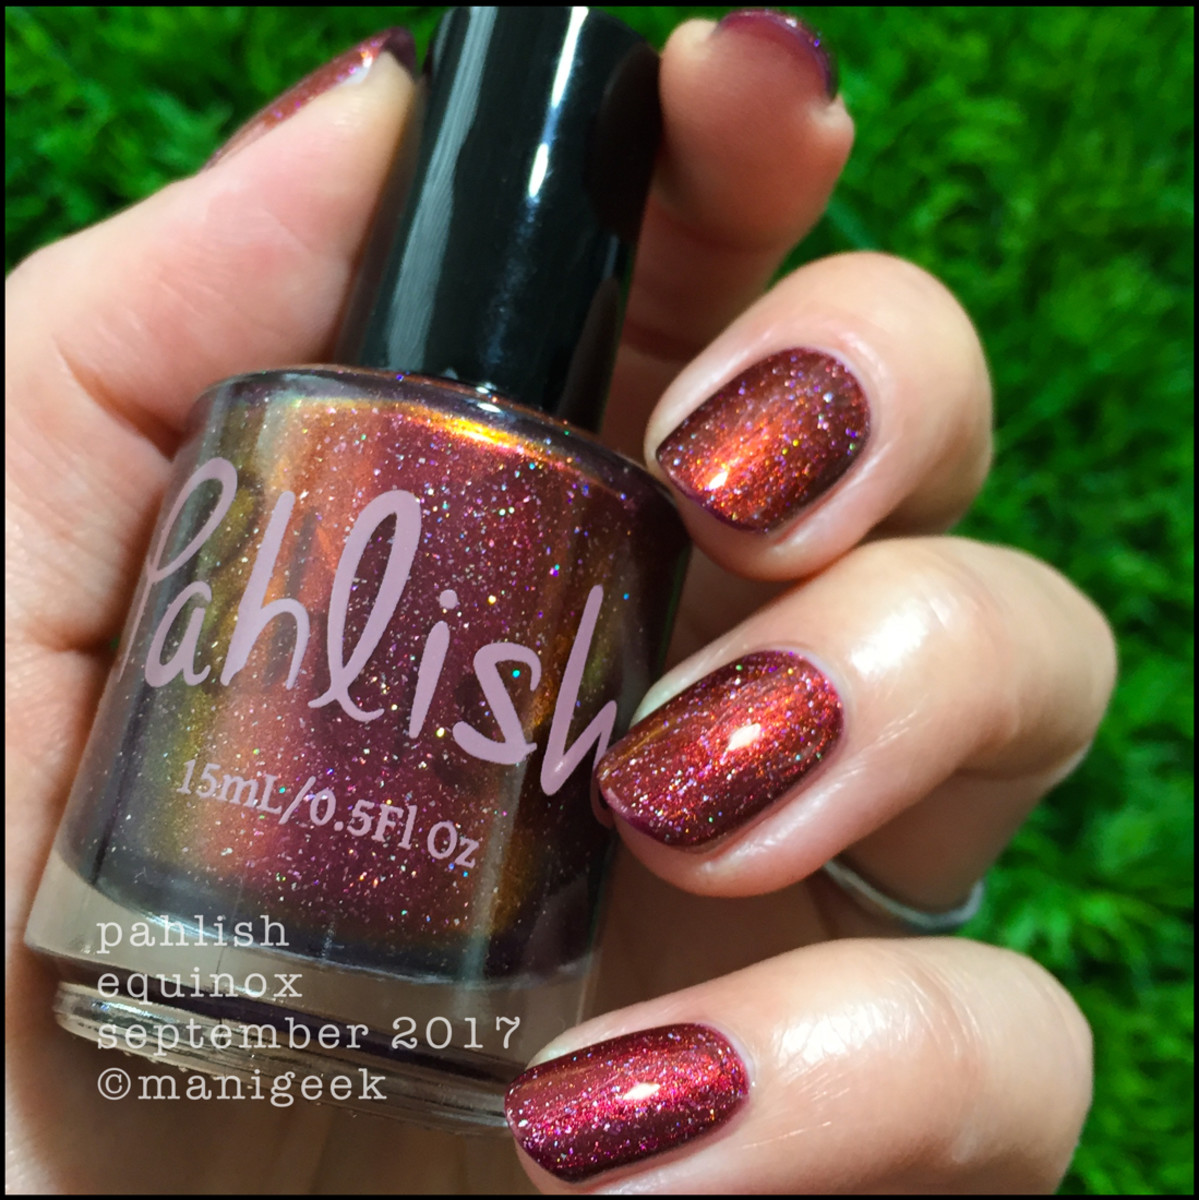 Pahlish Equinox Swatches 2 _ Pahlish September 2017 Release Swatches Manigeek